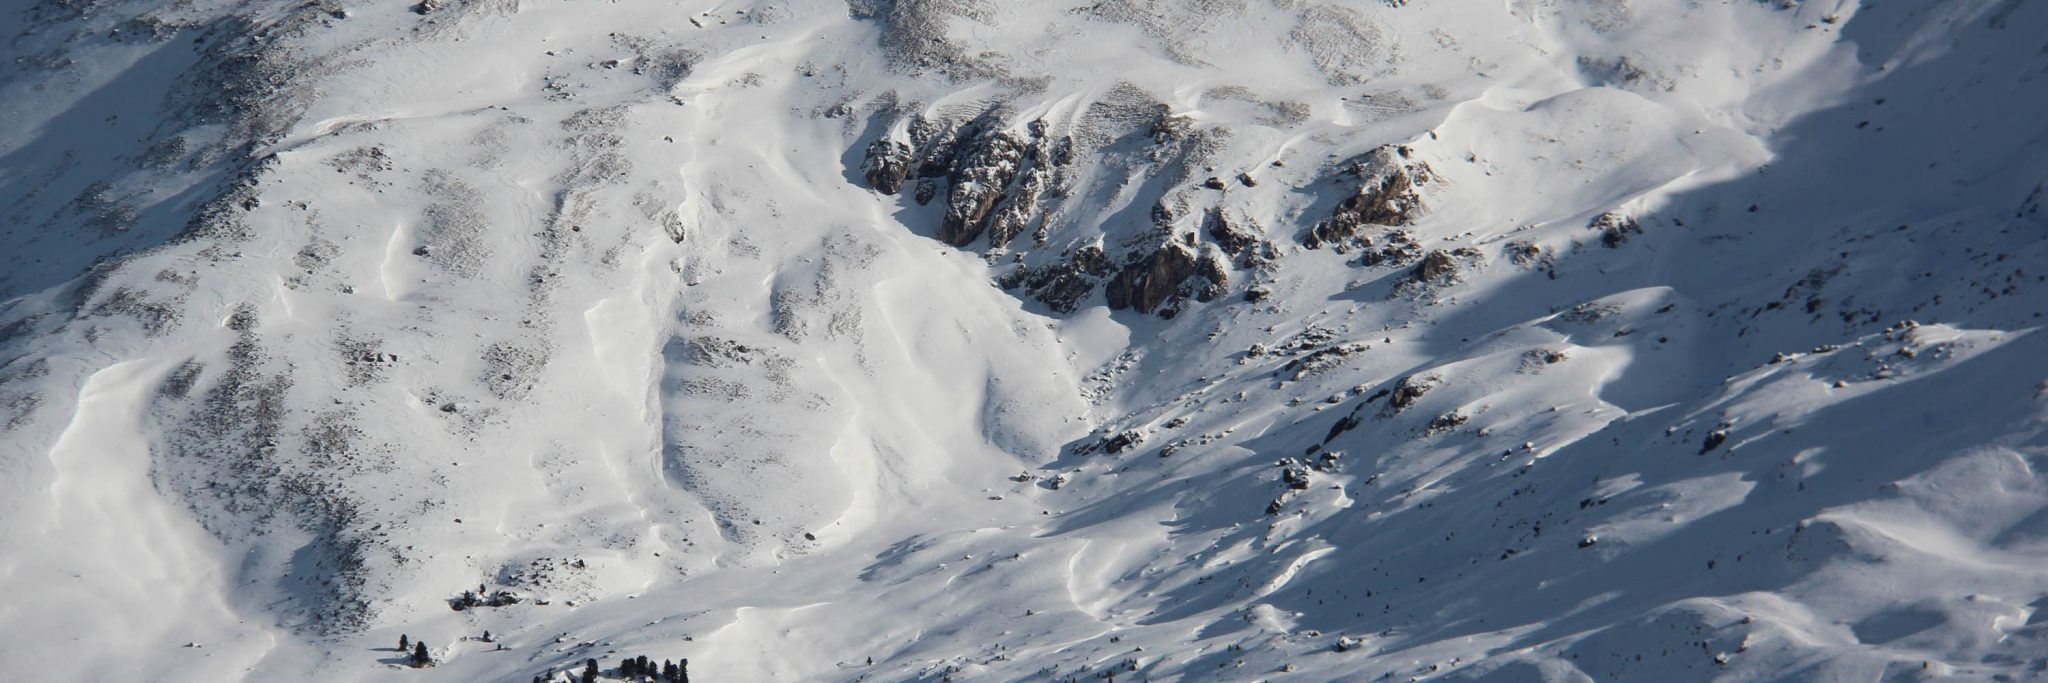 Glossary dp7 - shallow snow next to deep snow © LWD Tirol | EAWS European Avalanche Warning Services